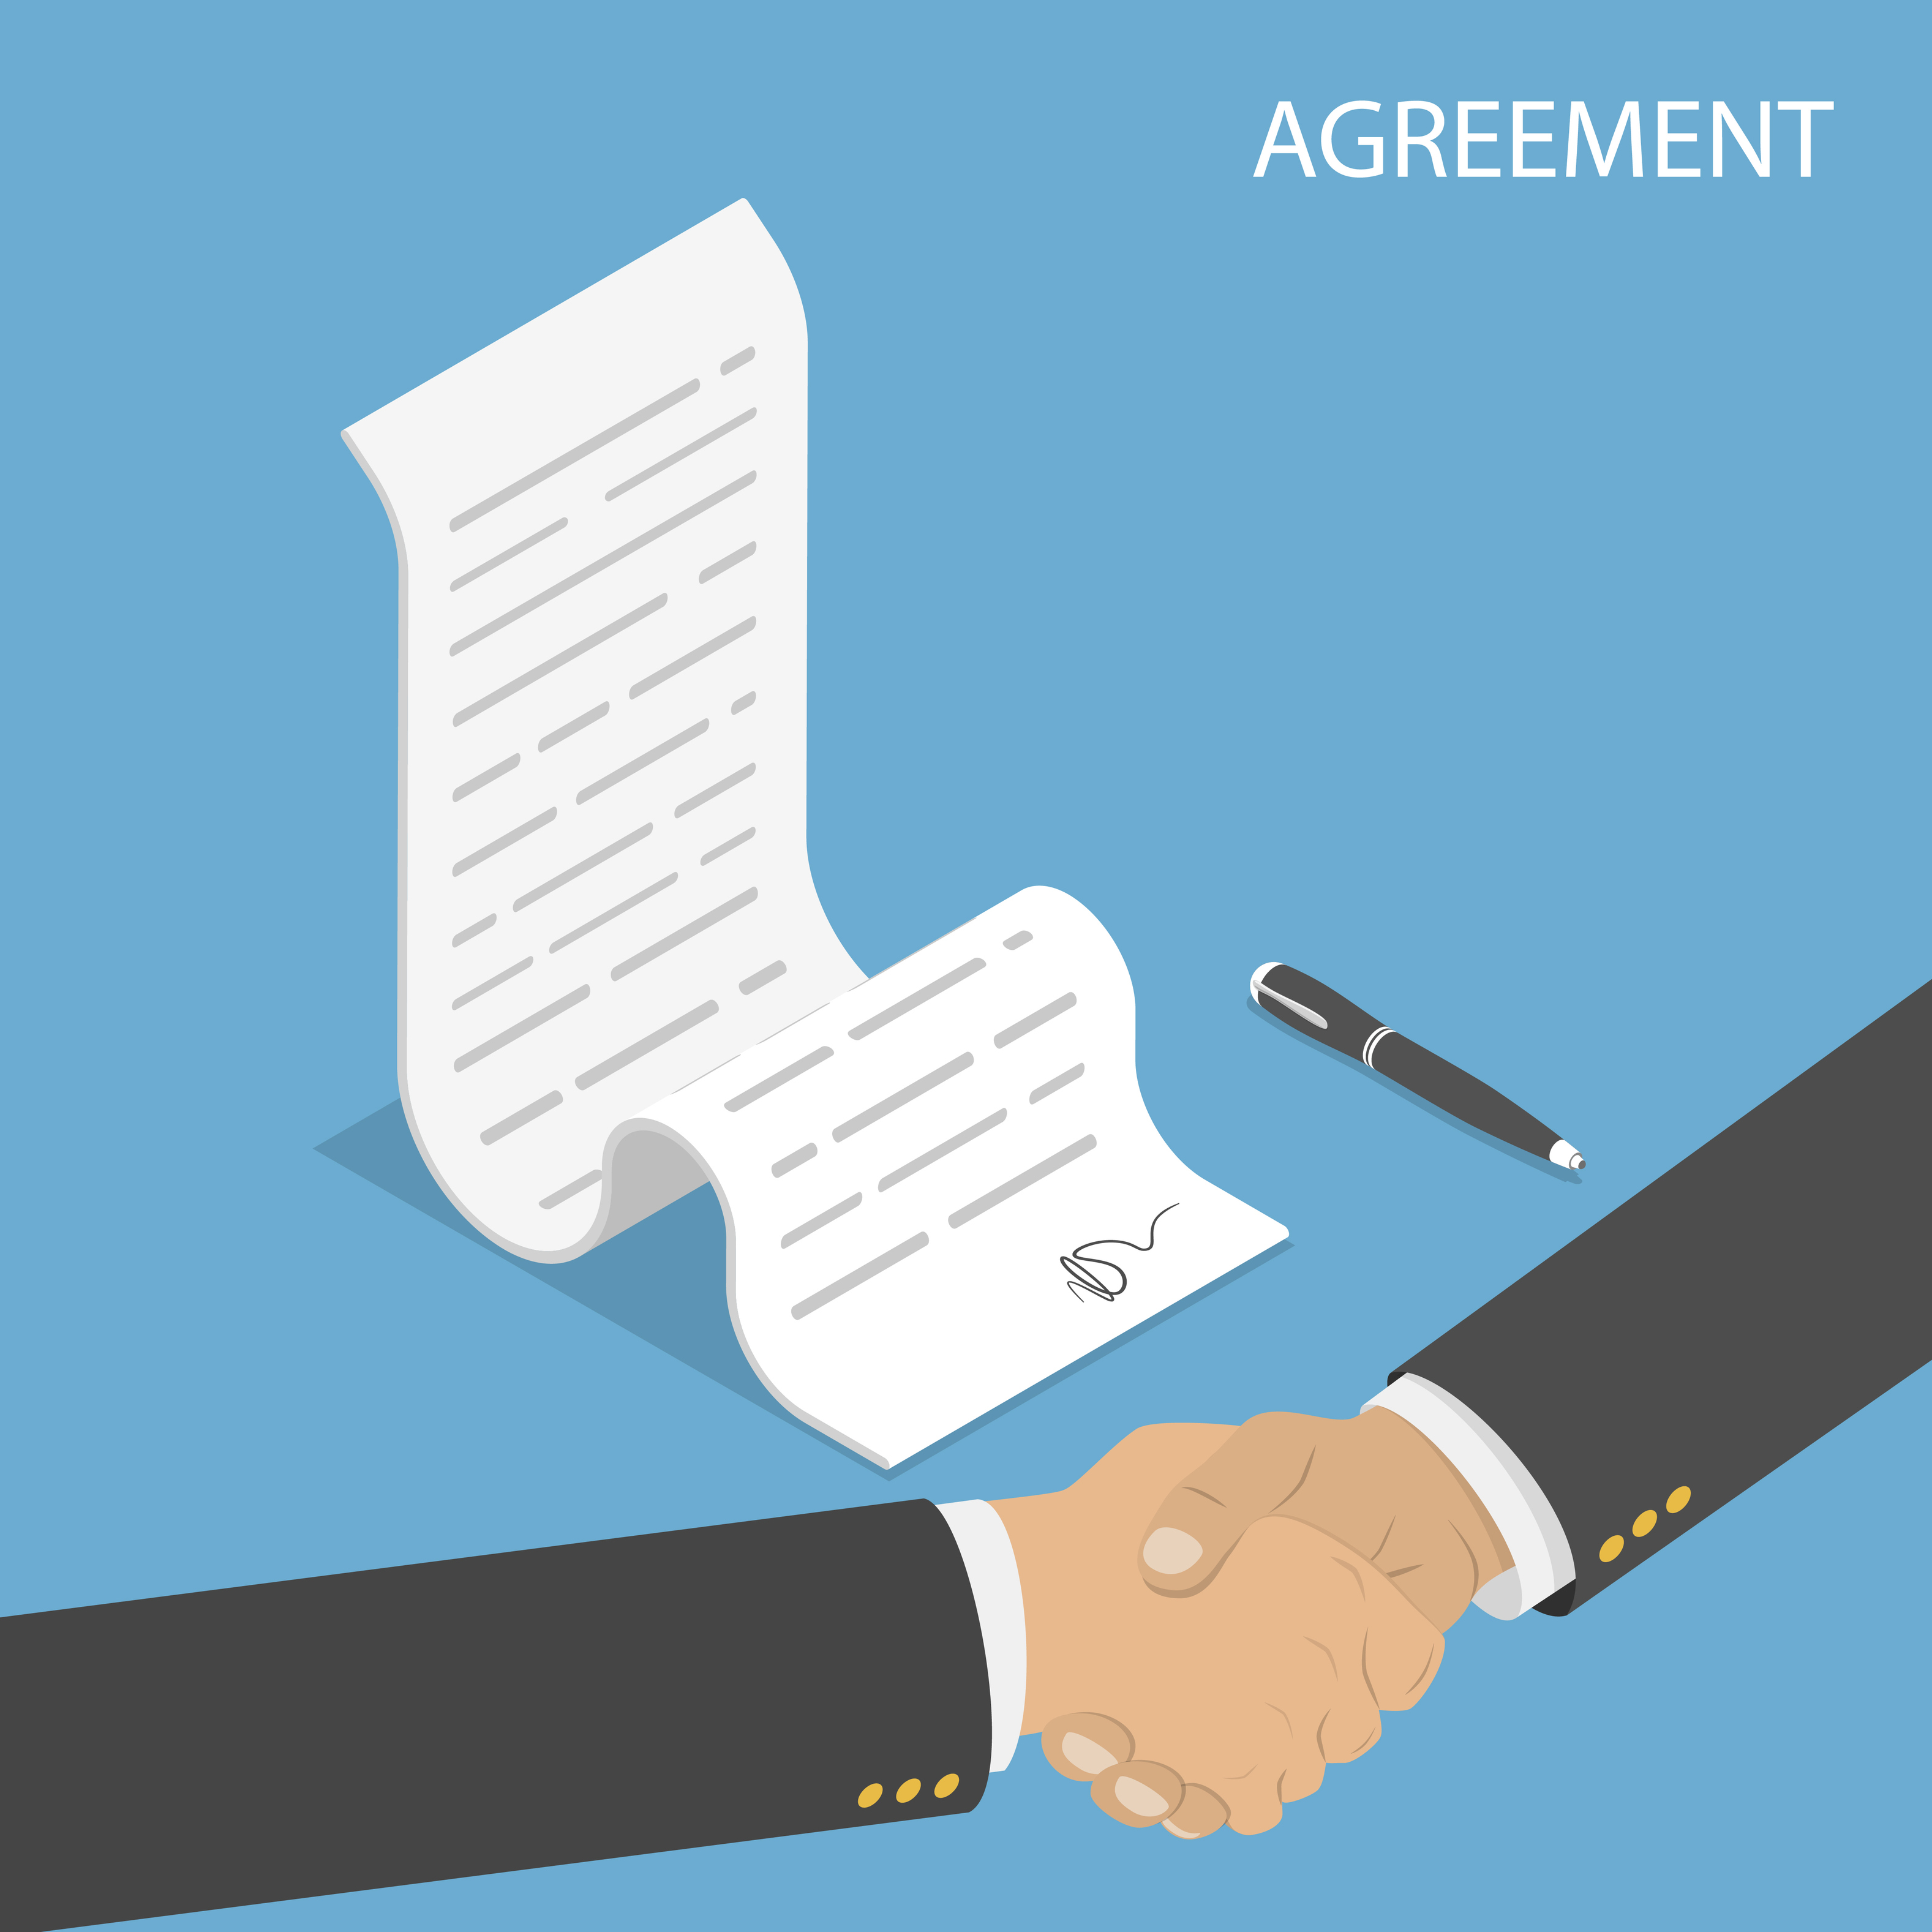 Shareholders' Agreement